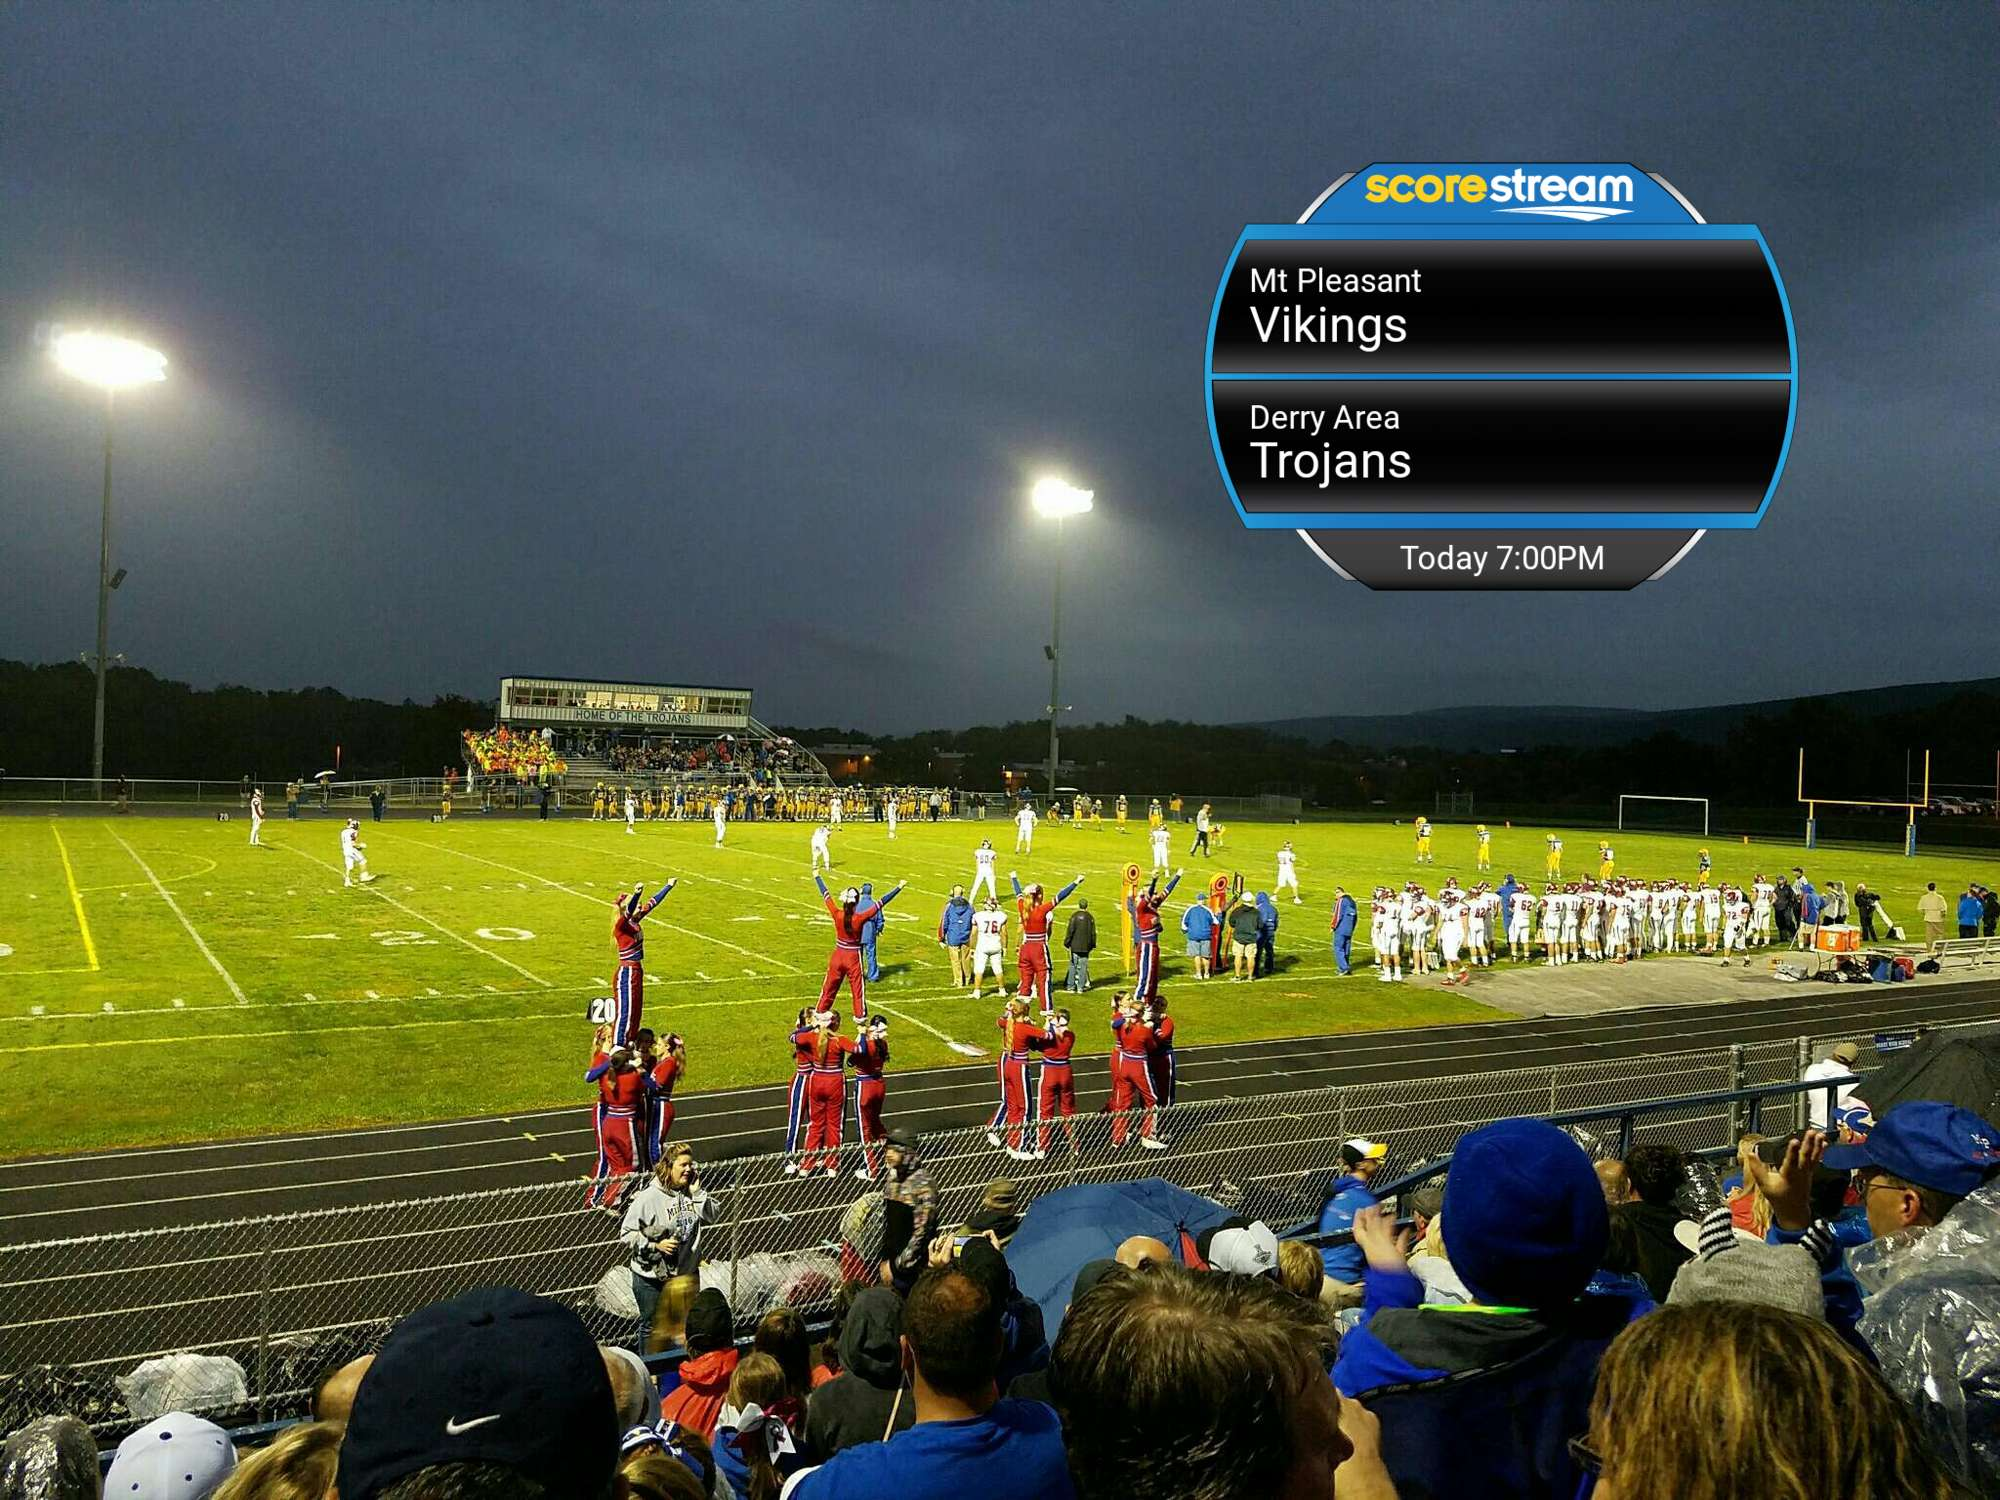 The Mt Pleasant Vikings Vs The Derry Area Trojans Scorestream